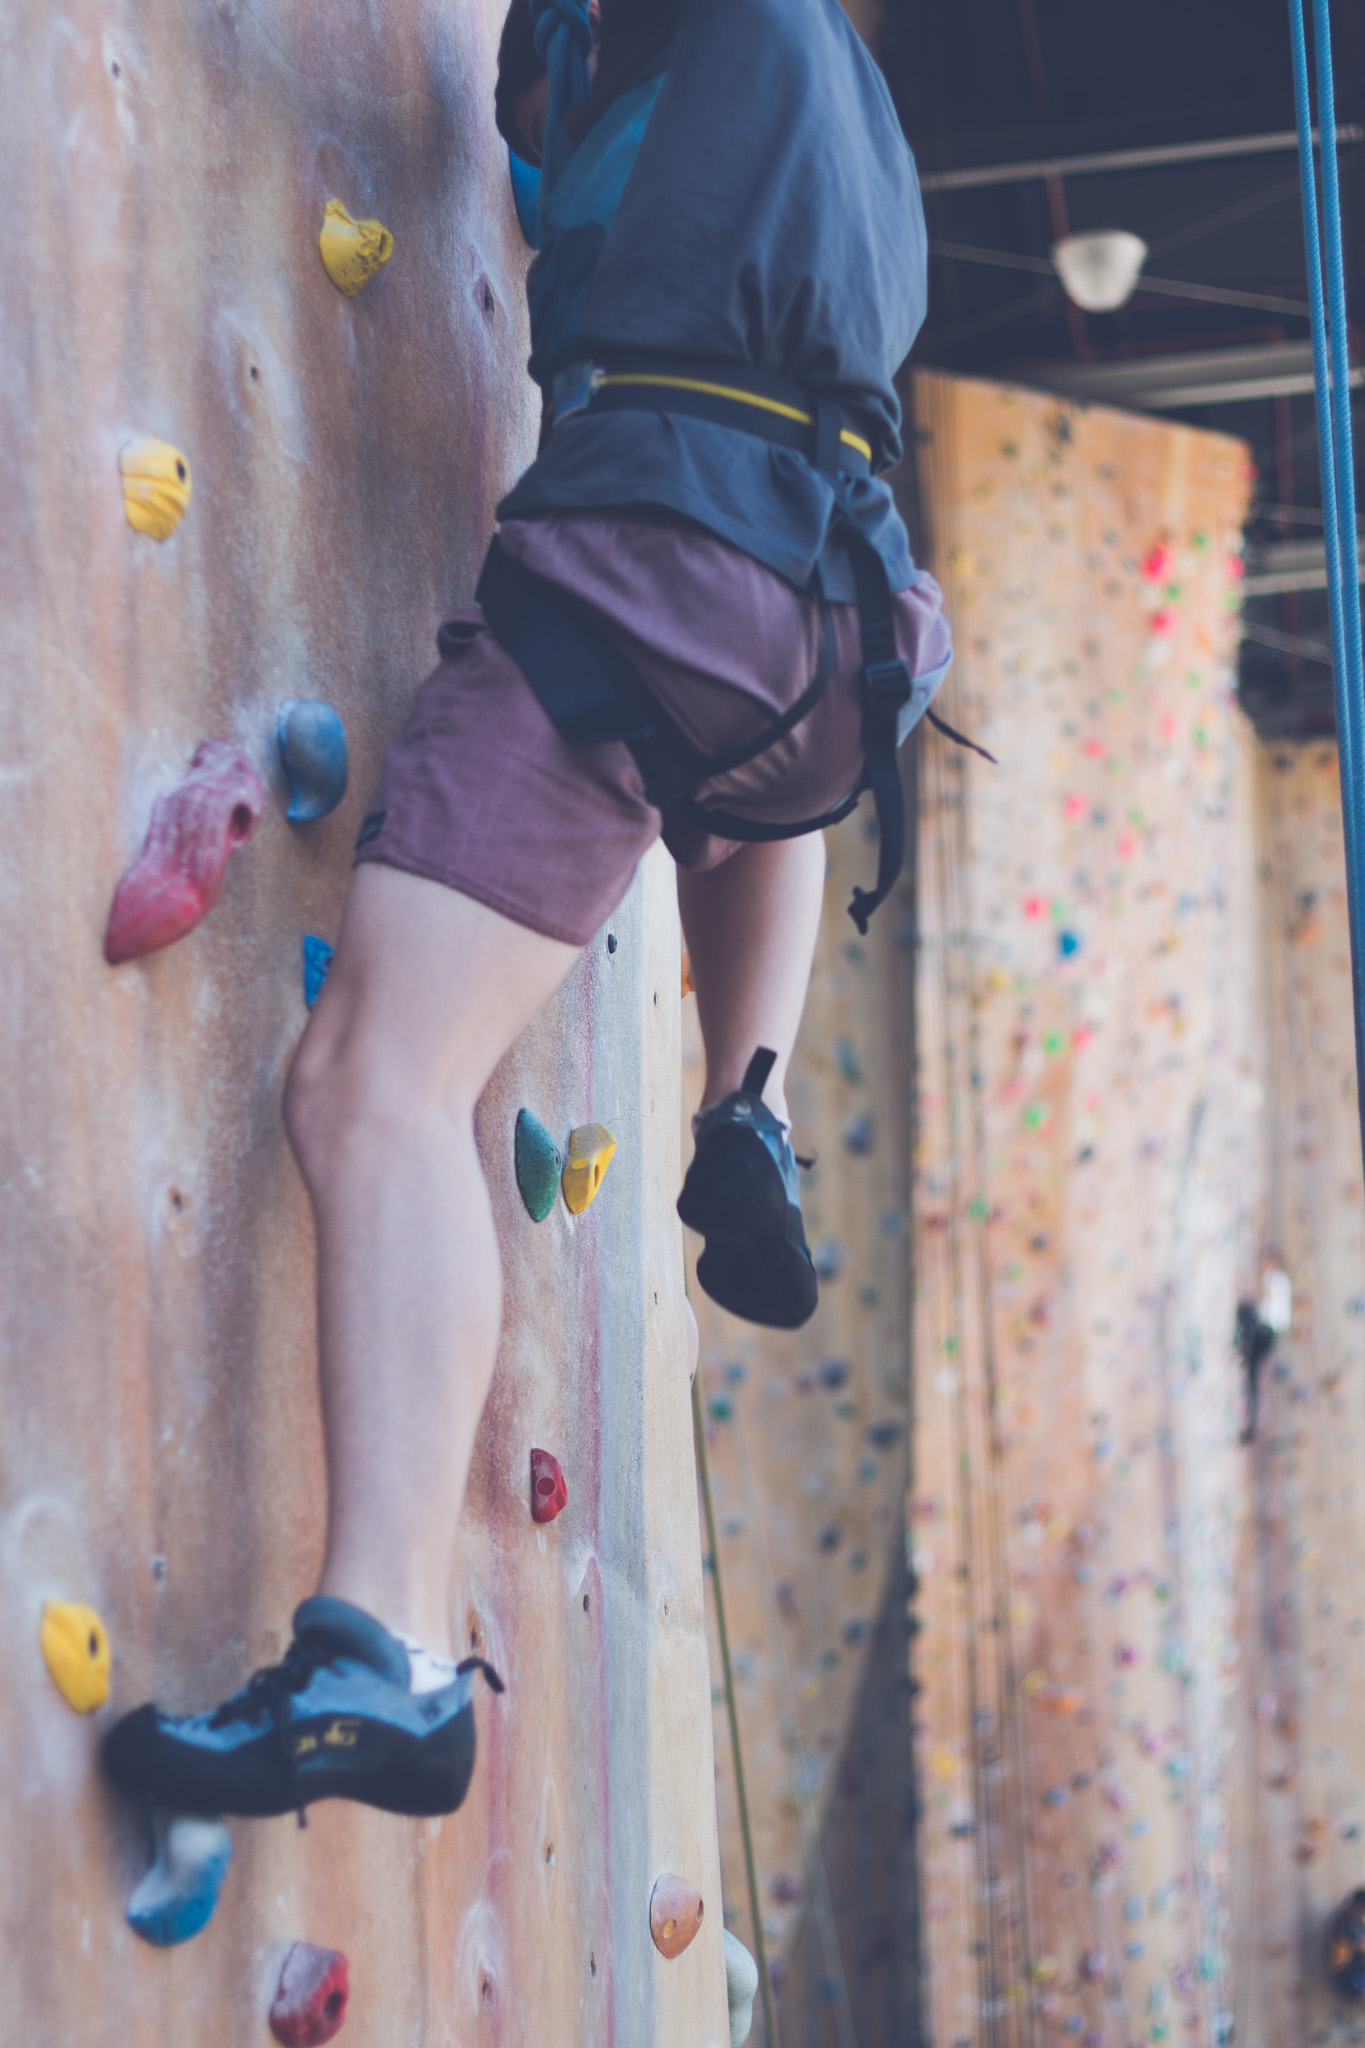 Mum, I want to be a rock climber